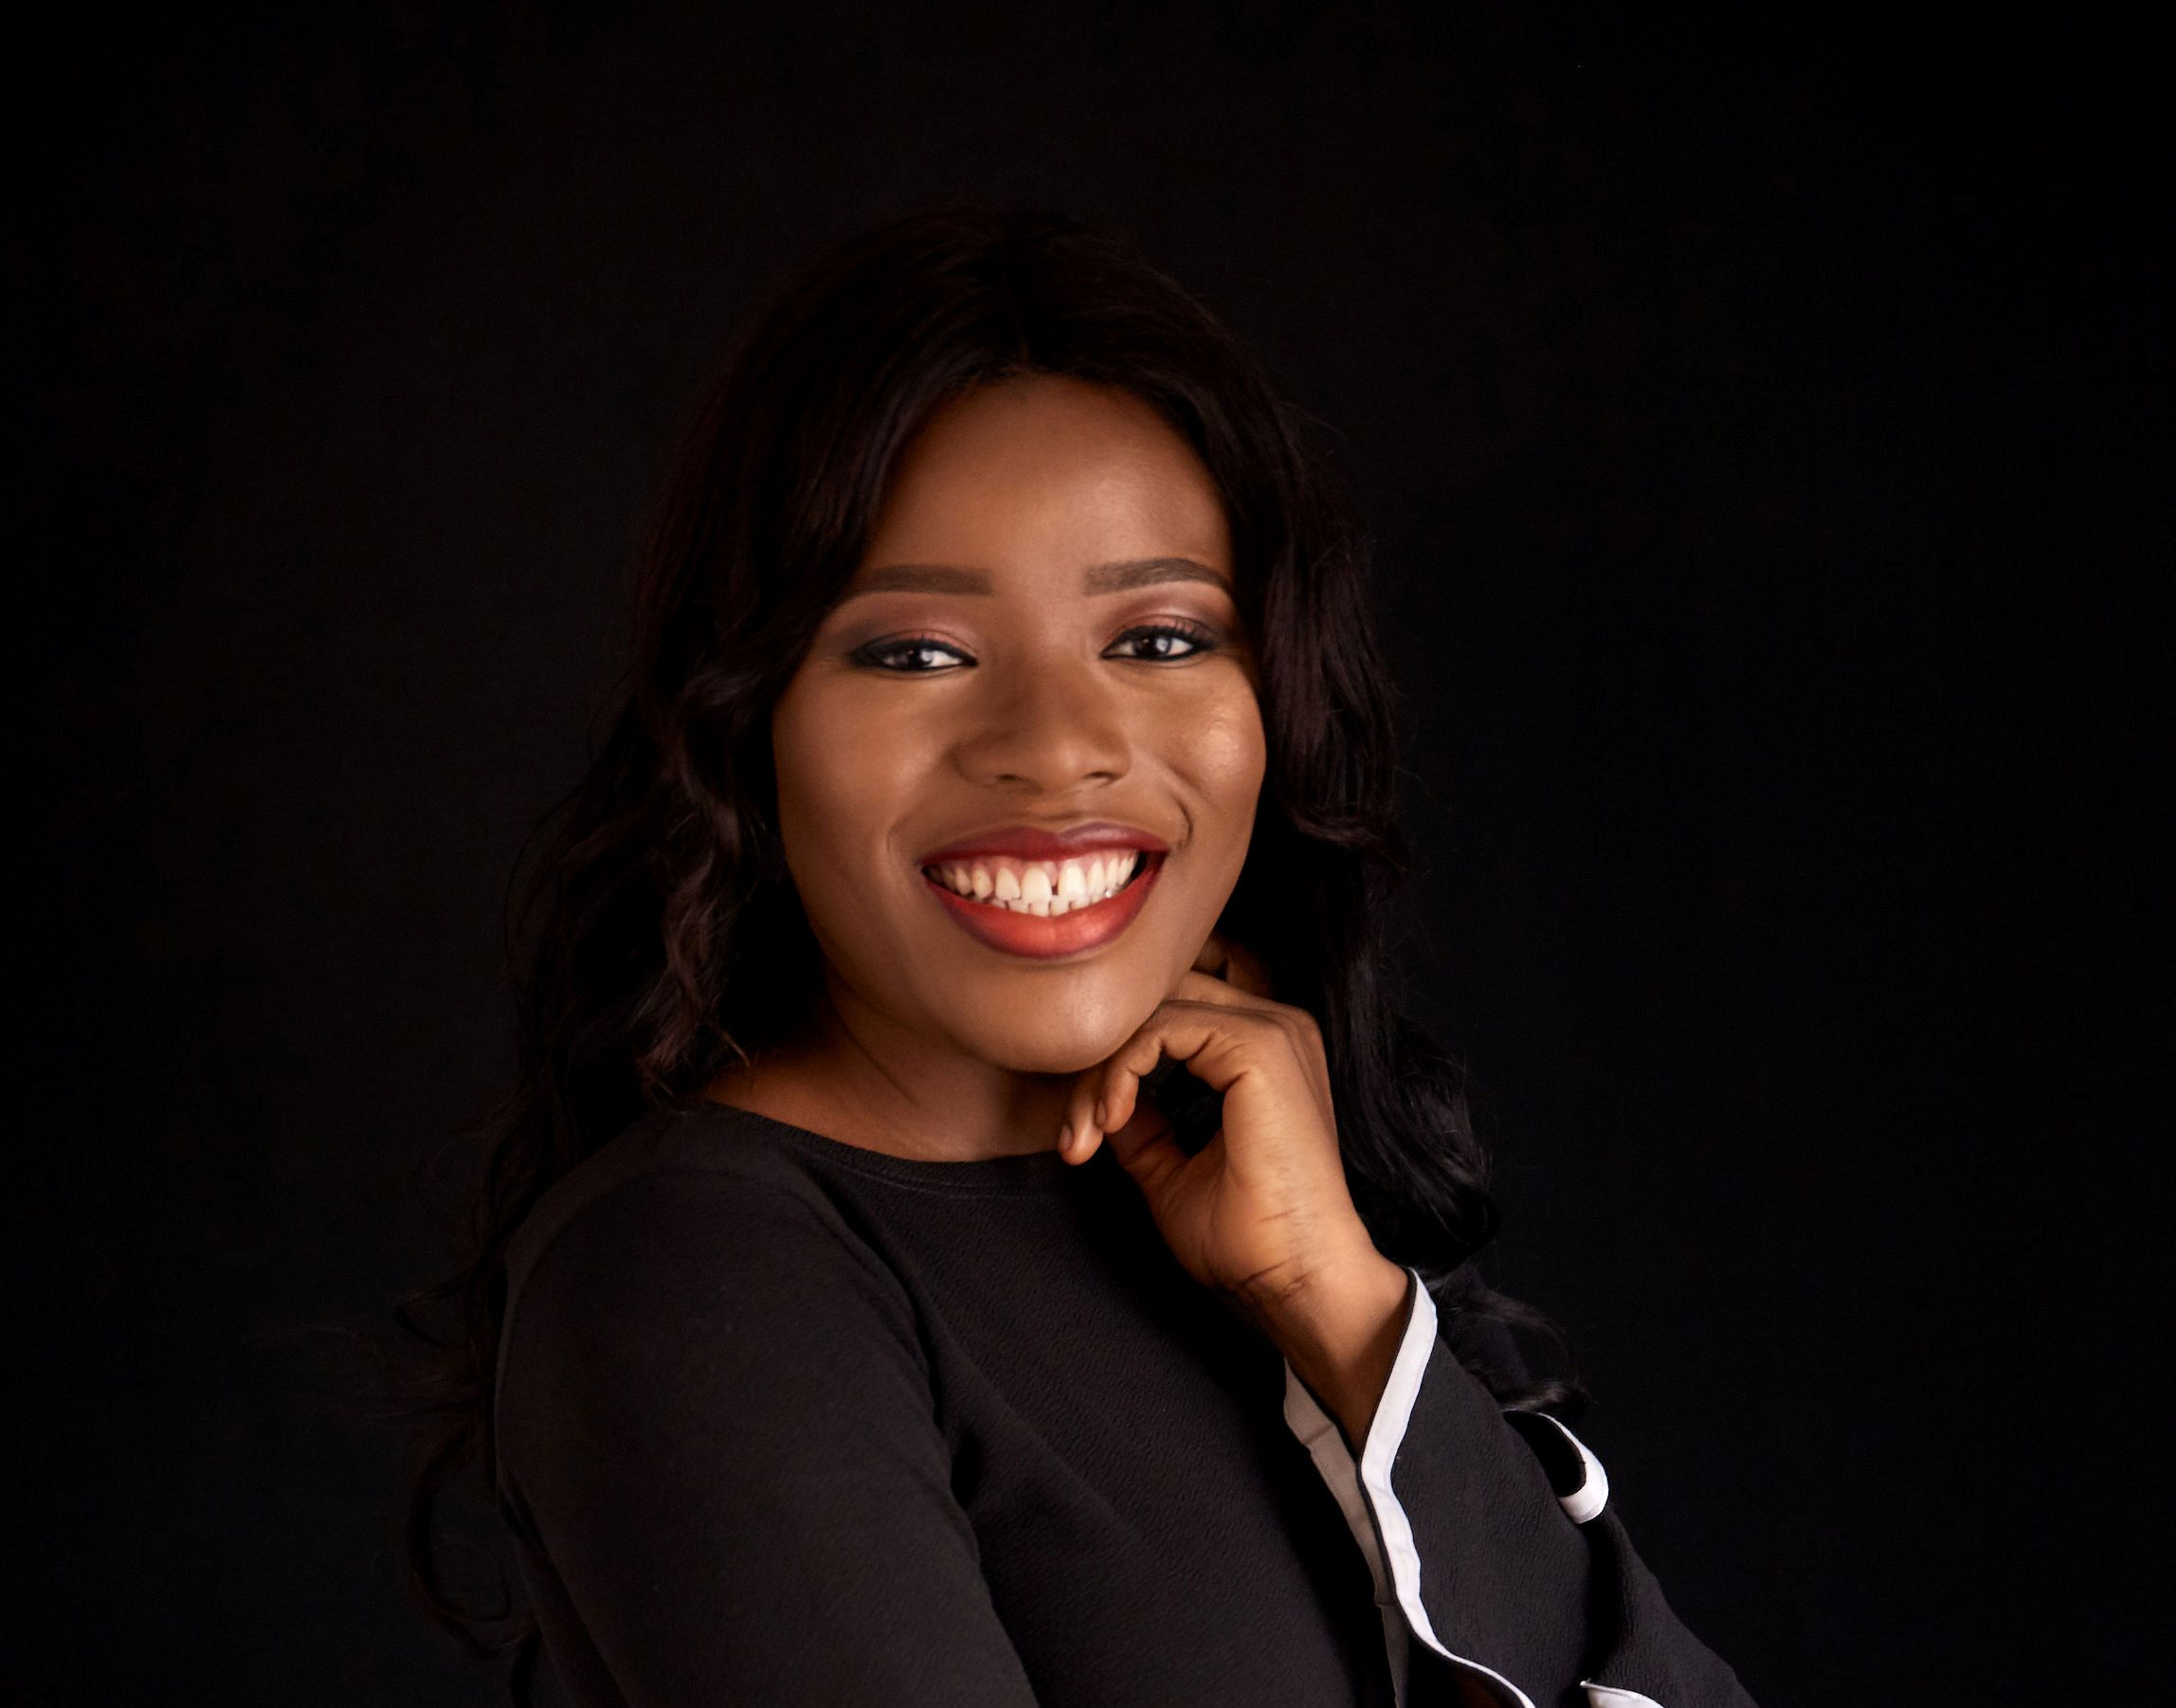 Adedoyin Jaiyesimi the creative content connoisseur - the spark youth empowerment platforms in Nigeria